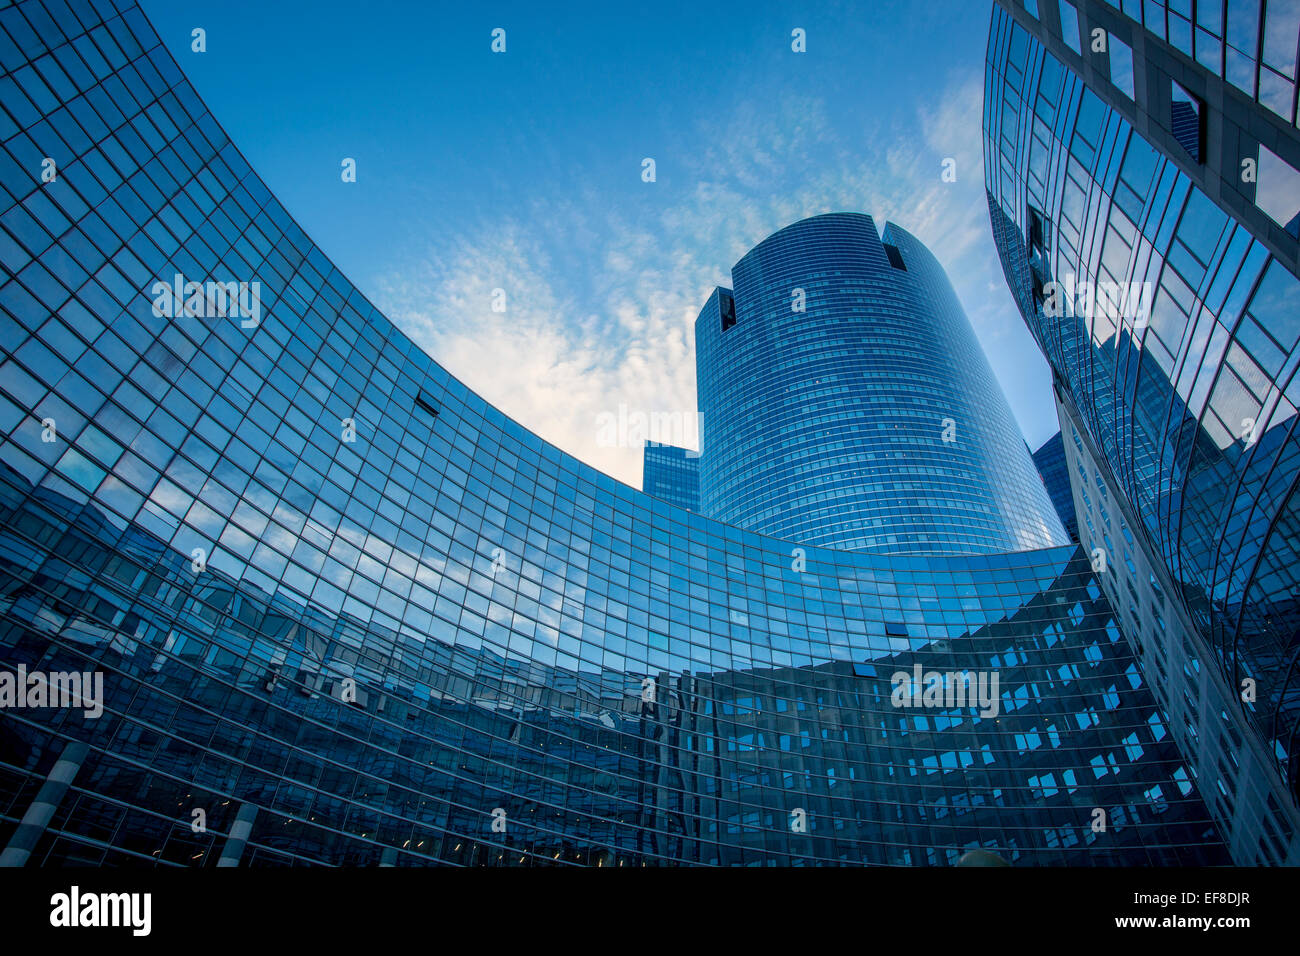 modern architecture and buildings of la defense district paris stock photo royalty free image. Black Bedroom Furniture Sets. Home Design Ideas